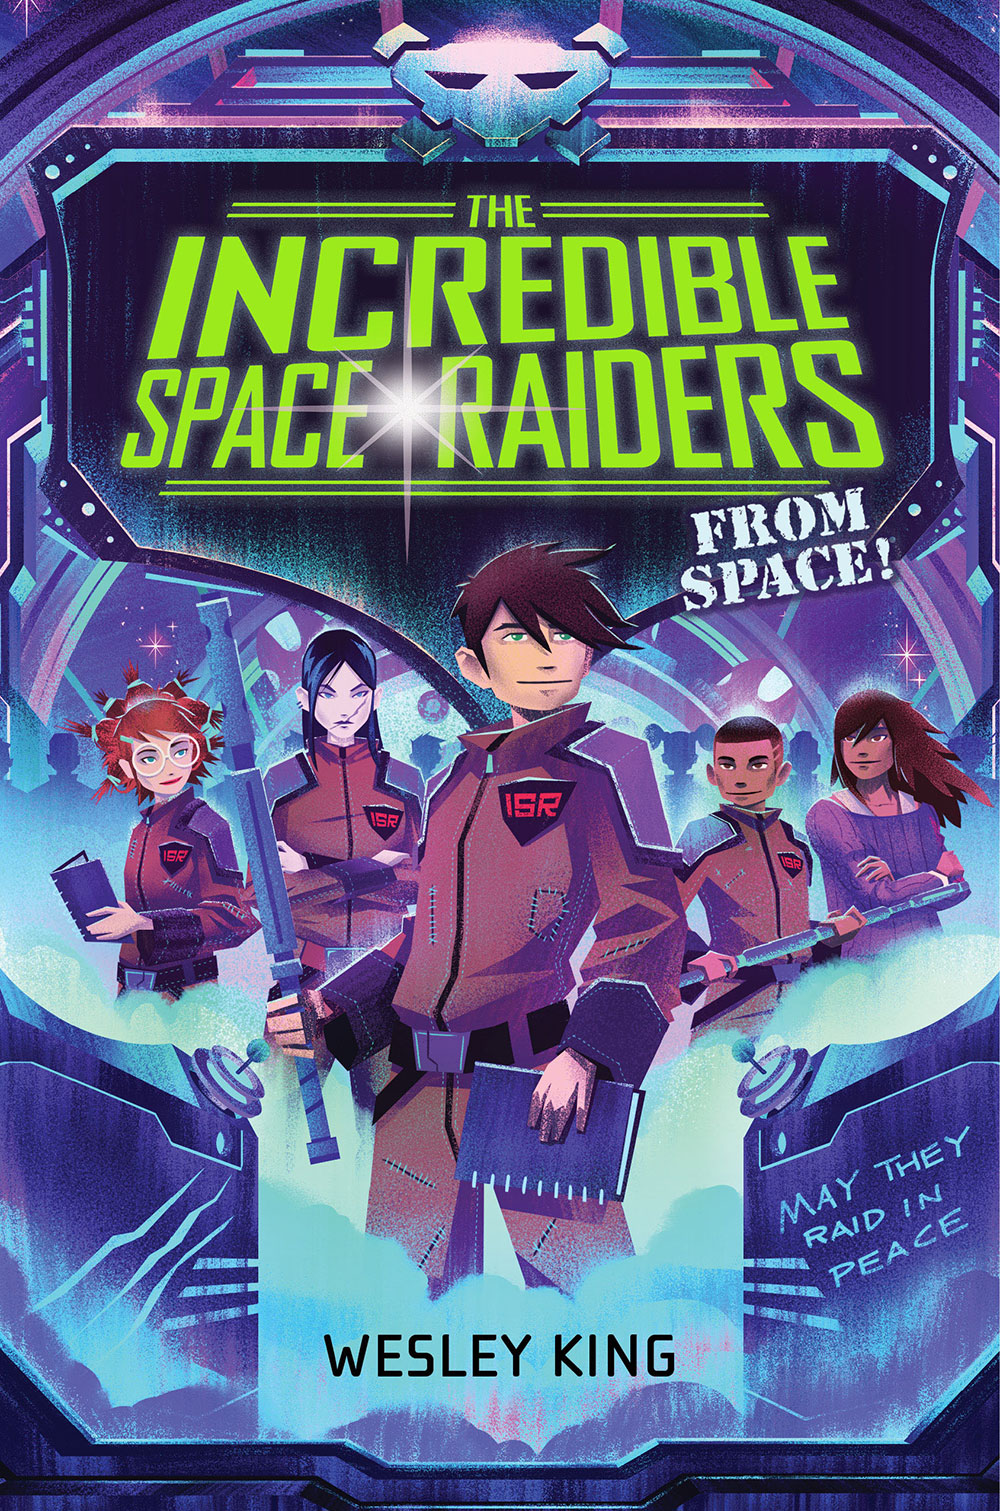 2014 · The Incredible Space Raiders